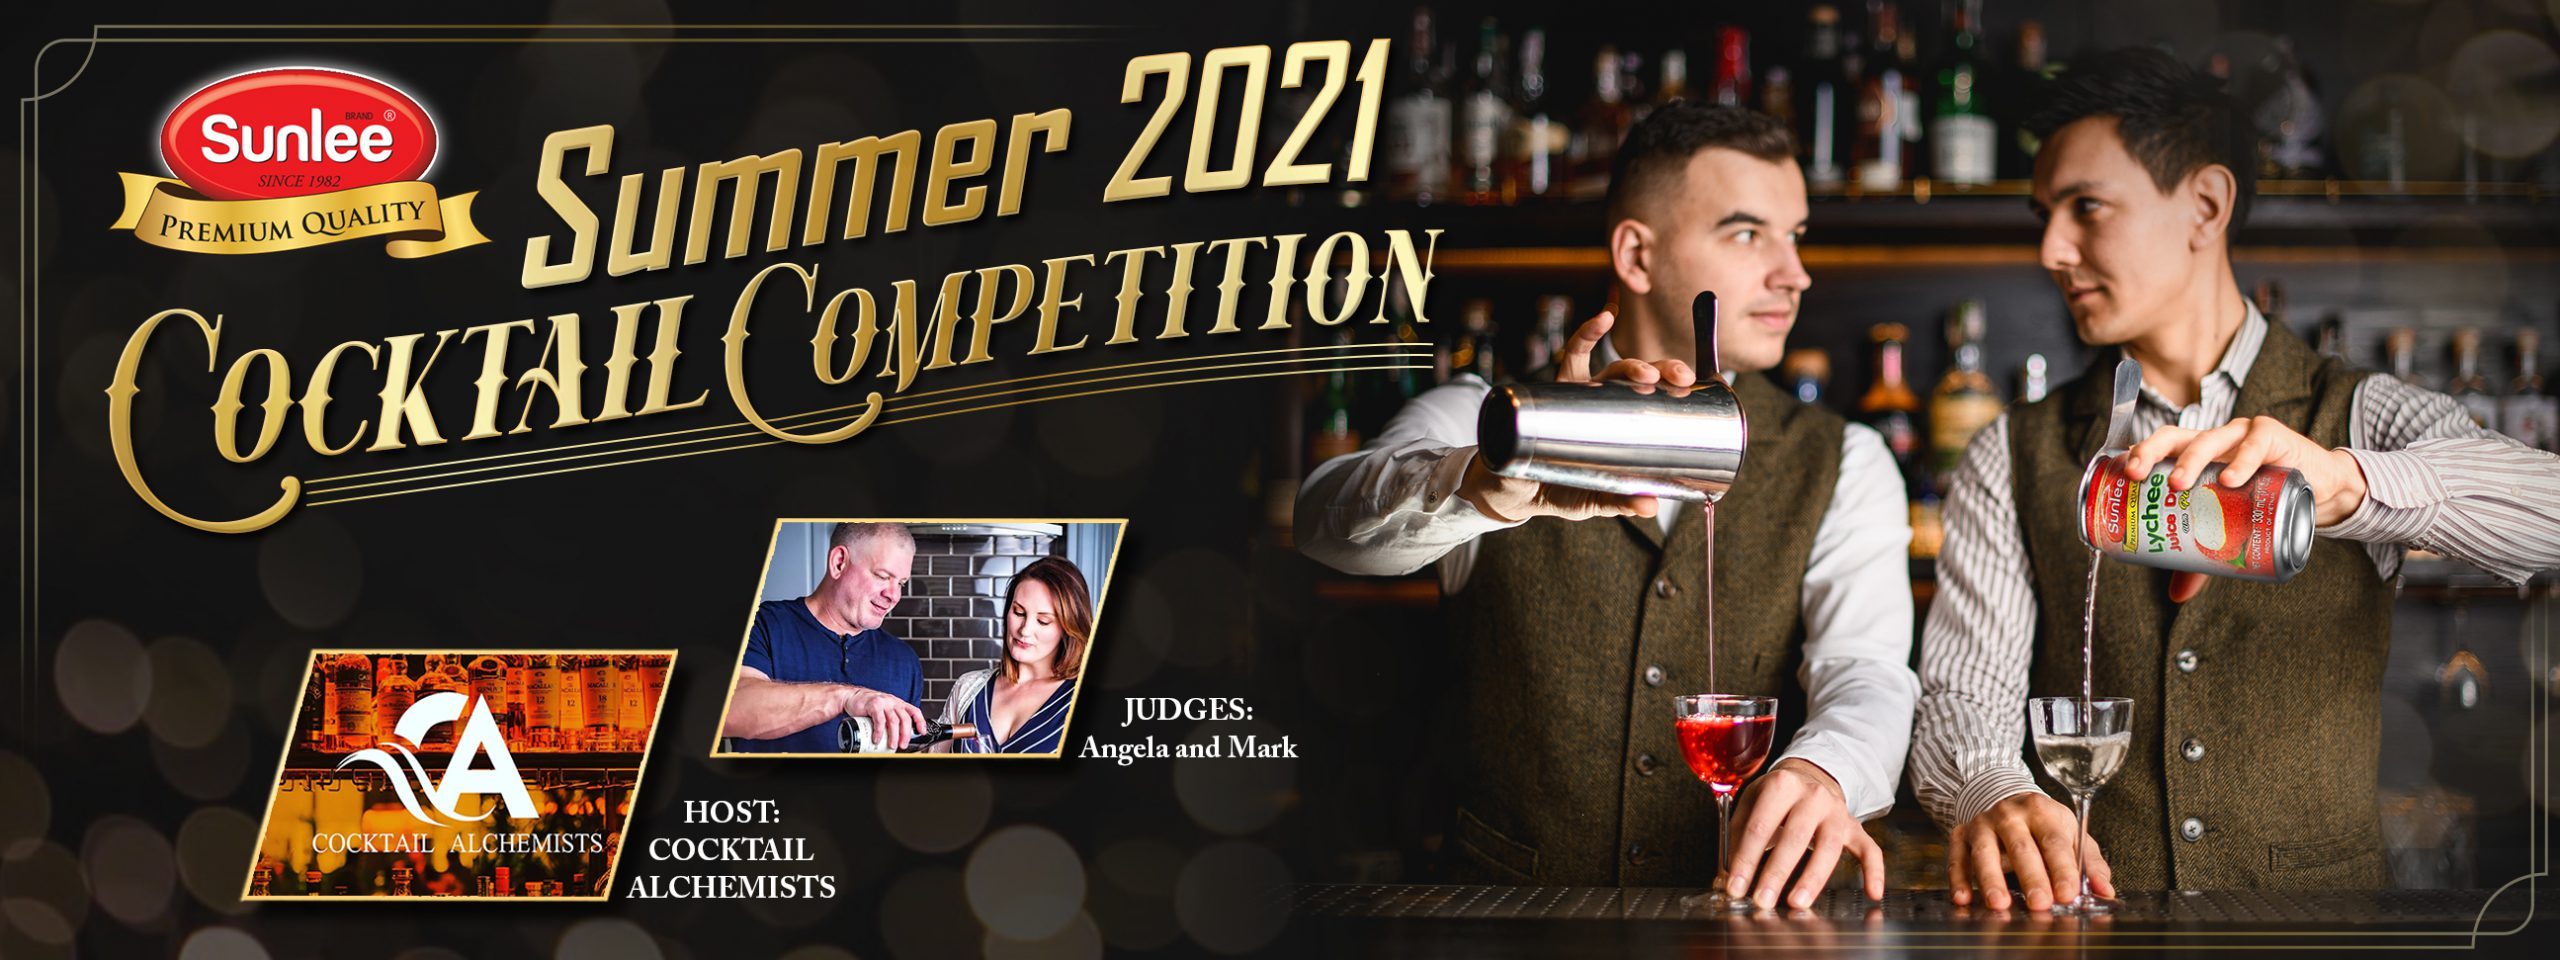 Summer 2021 Cocktail Competition